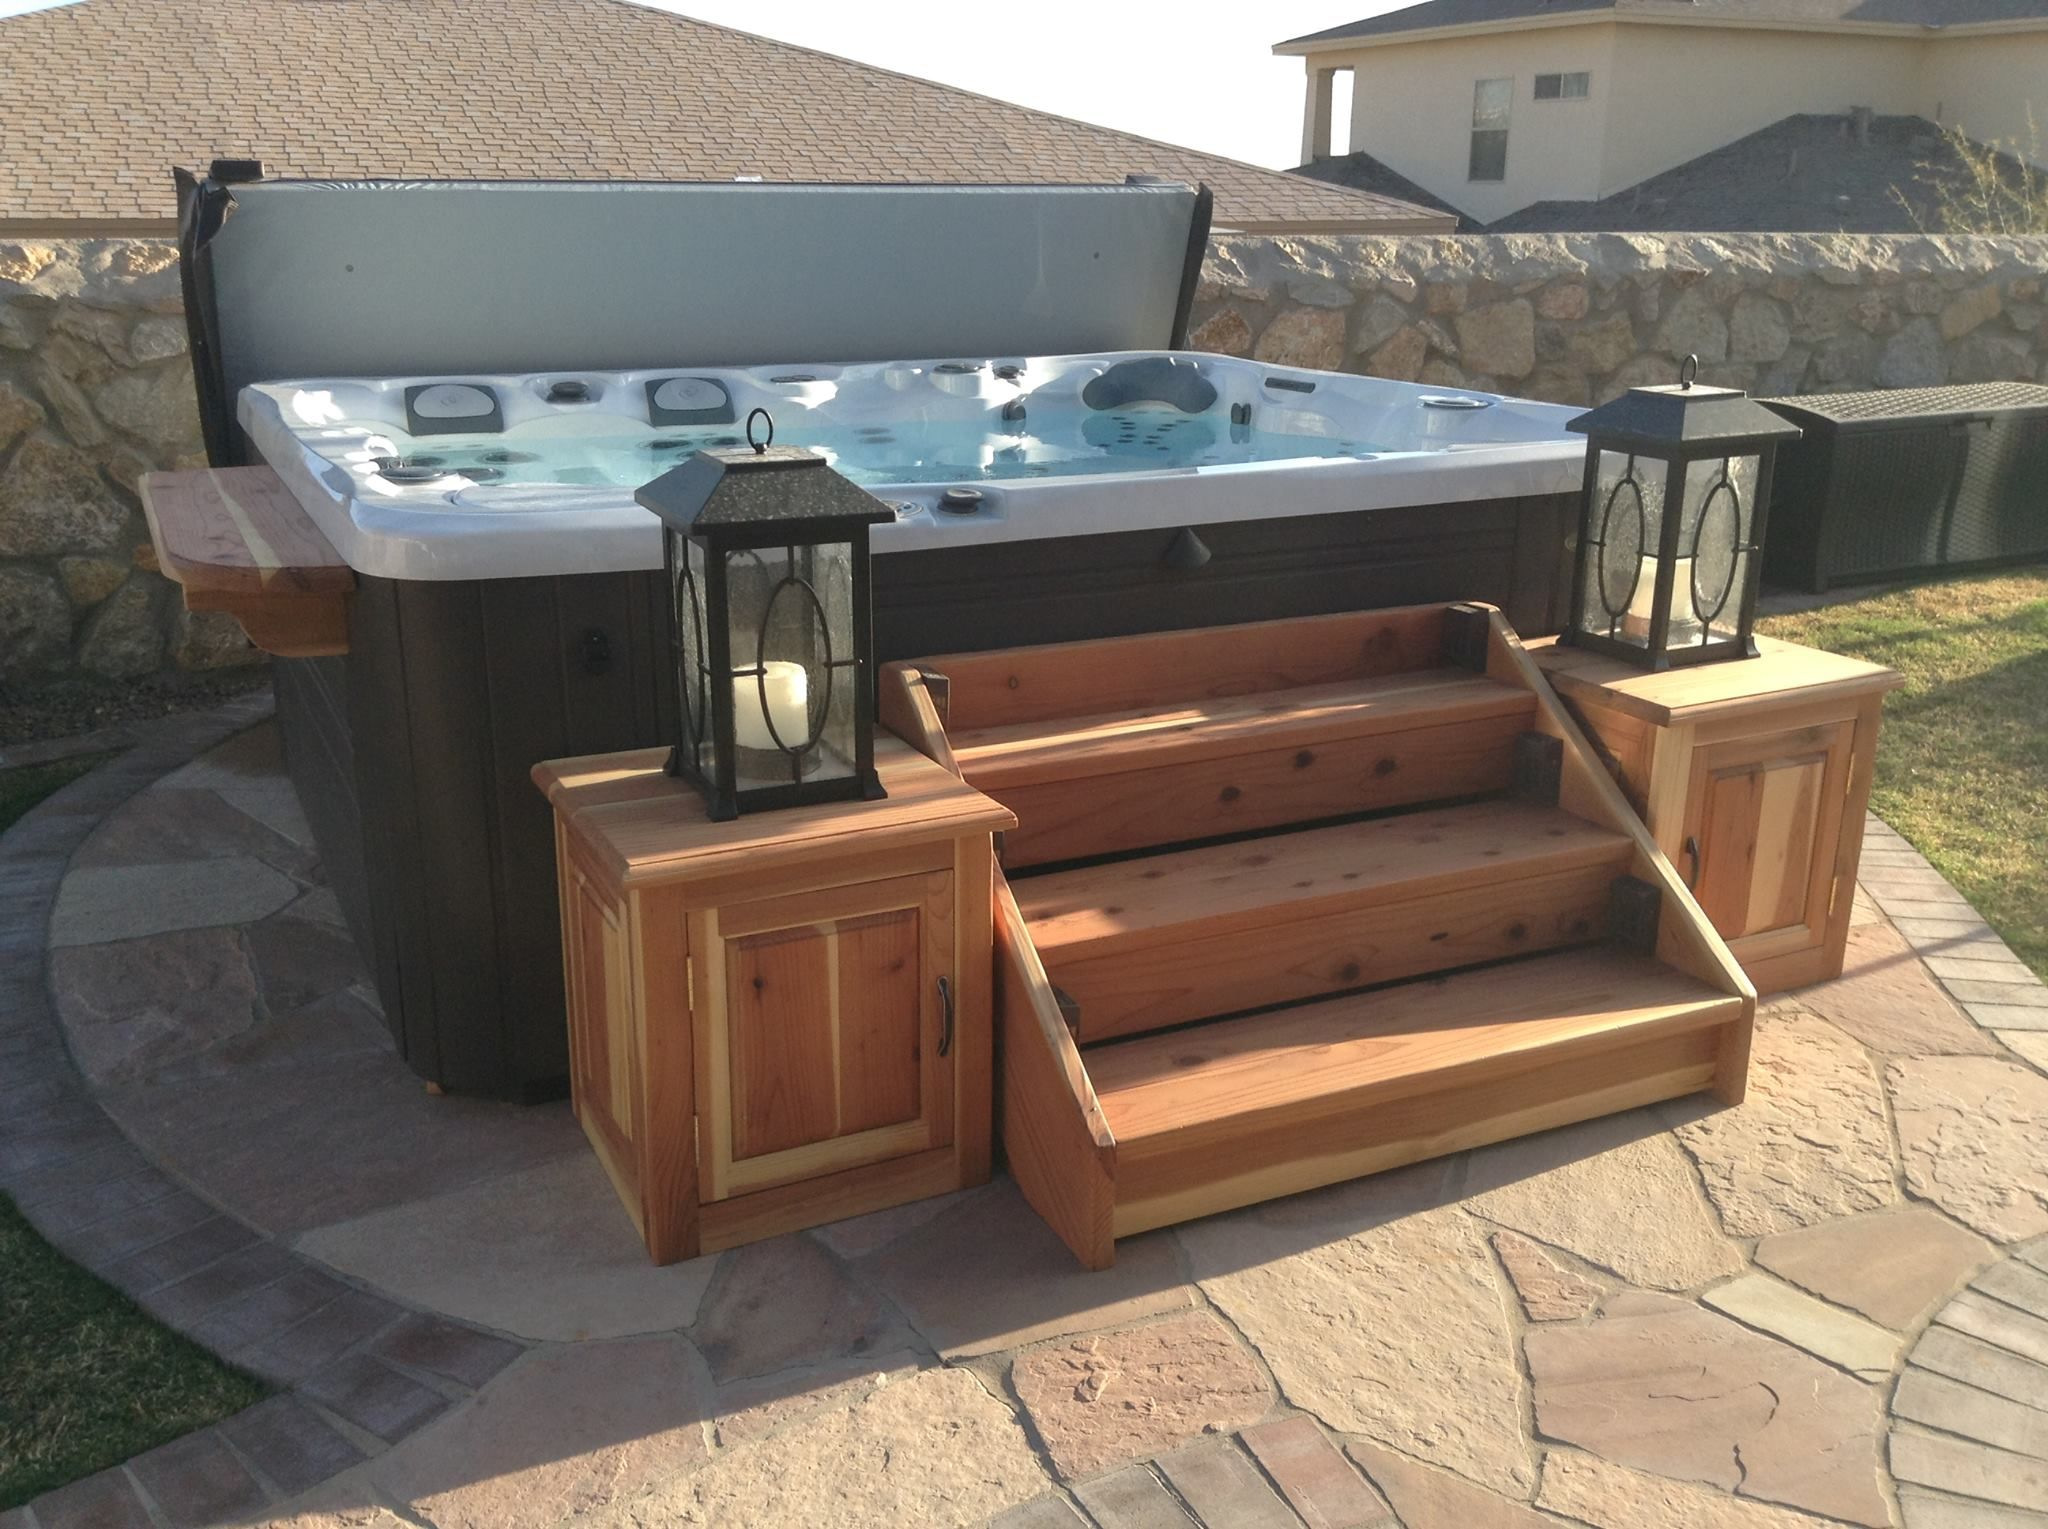 Cedar Wood Hot Tub Stairs Side Cabinets By Andy Hot Tub Cover Hot Tub Patio Hot Tub Backyard